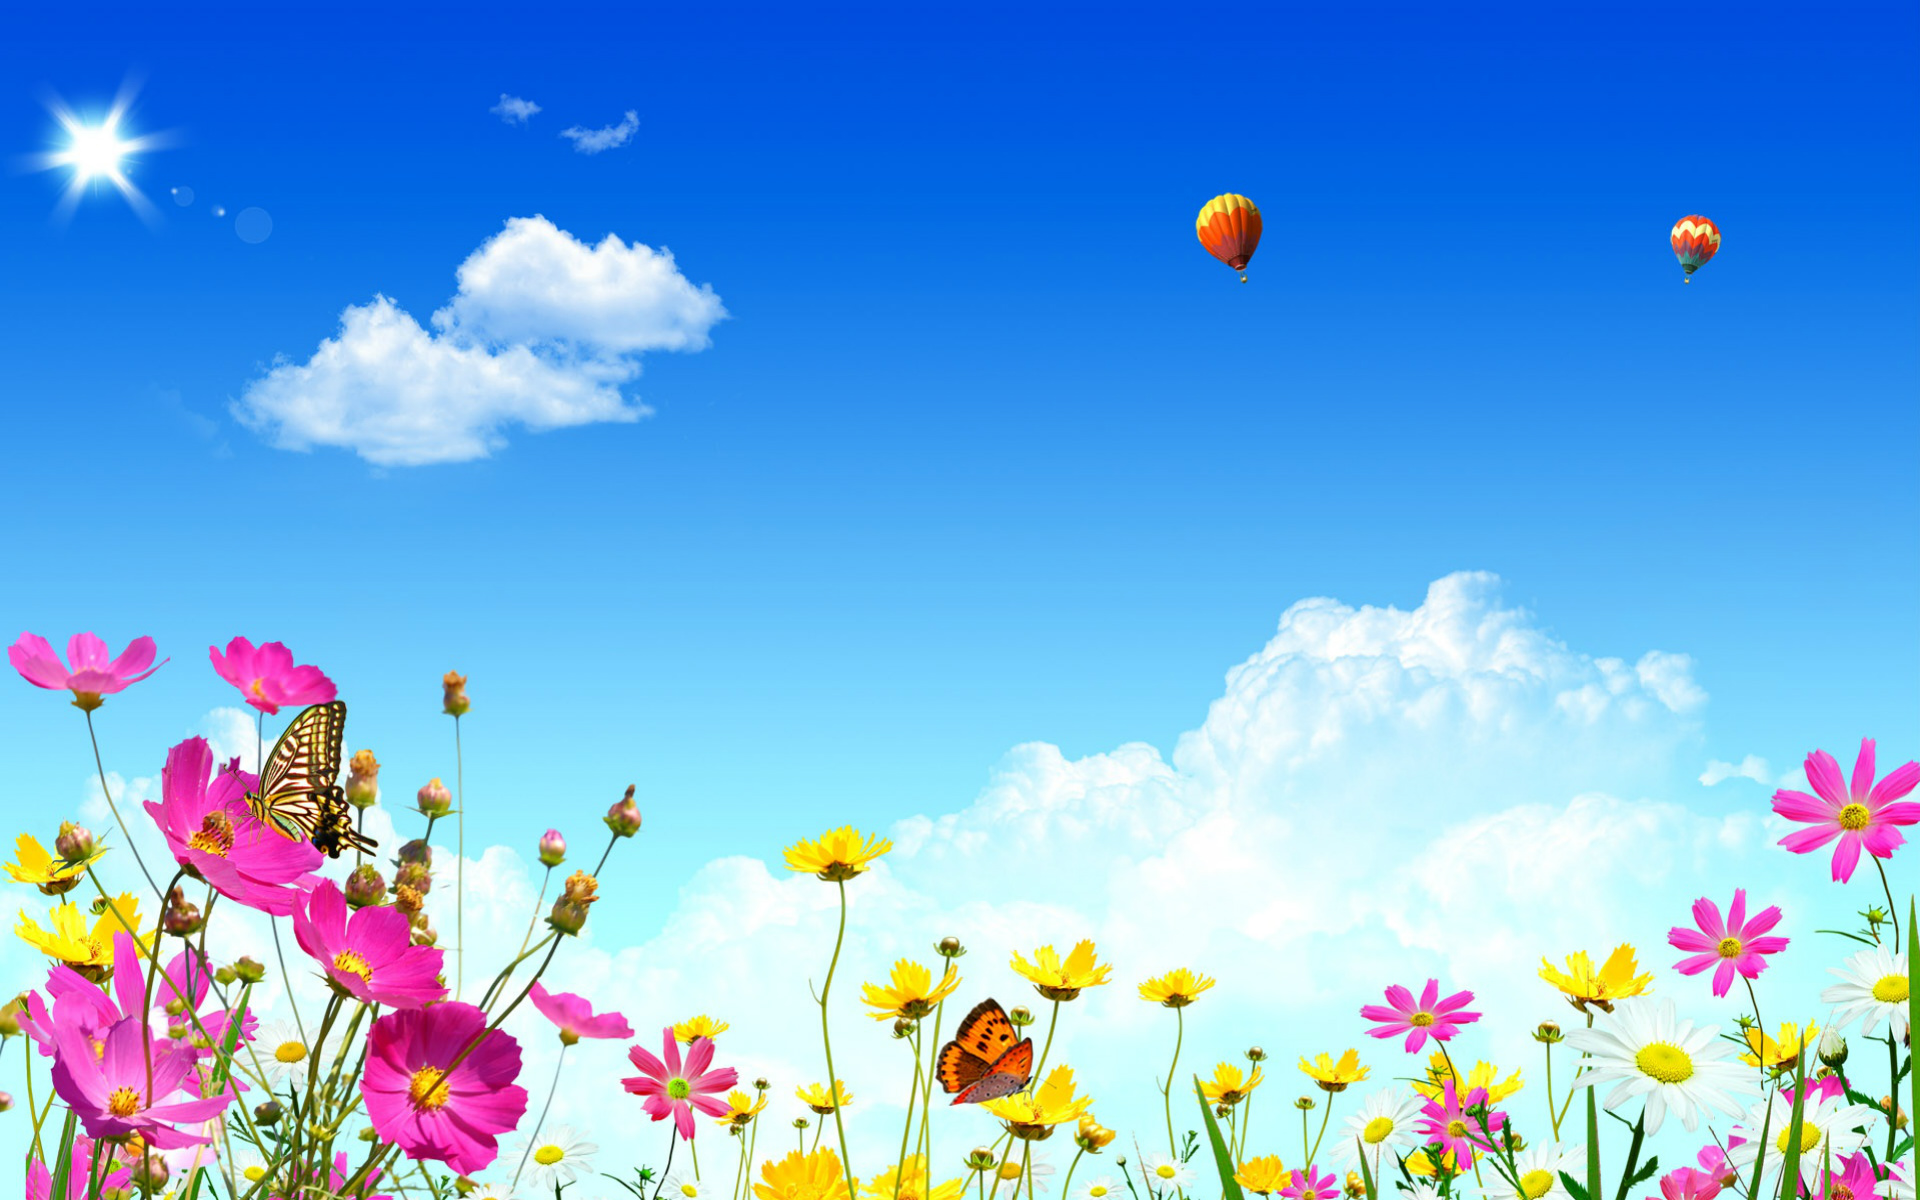 download spring desktop backgrounds which is under the spring 1920x1200